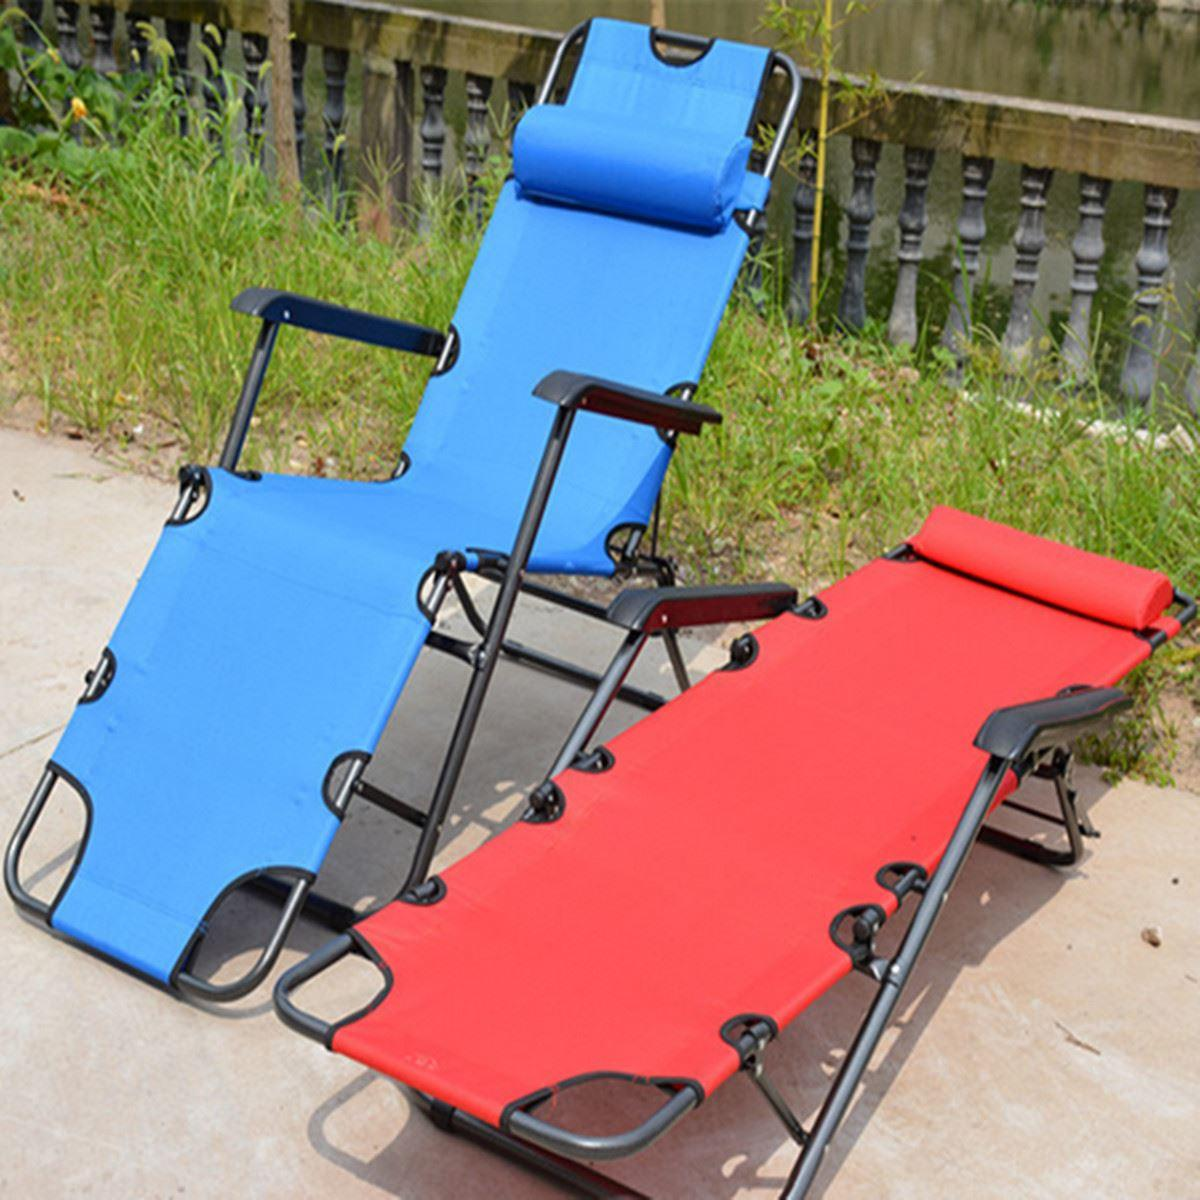 Best Folding Reclining Outdoor Deck C&ing Sun Lounger Beach Chair Bed Office Napping Chairs Easy Carry 178*61*30cm Under $224.61 | Dhgate.Com & Best Folding Reclining Outdoor Deck Camping Sun Lounger Beach ... islam-shia.org